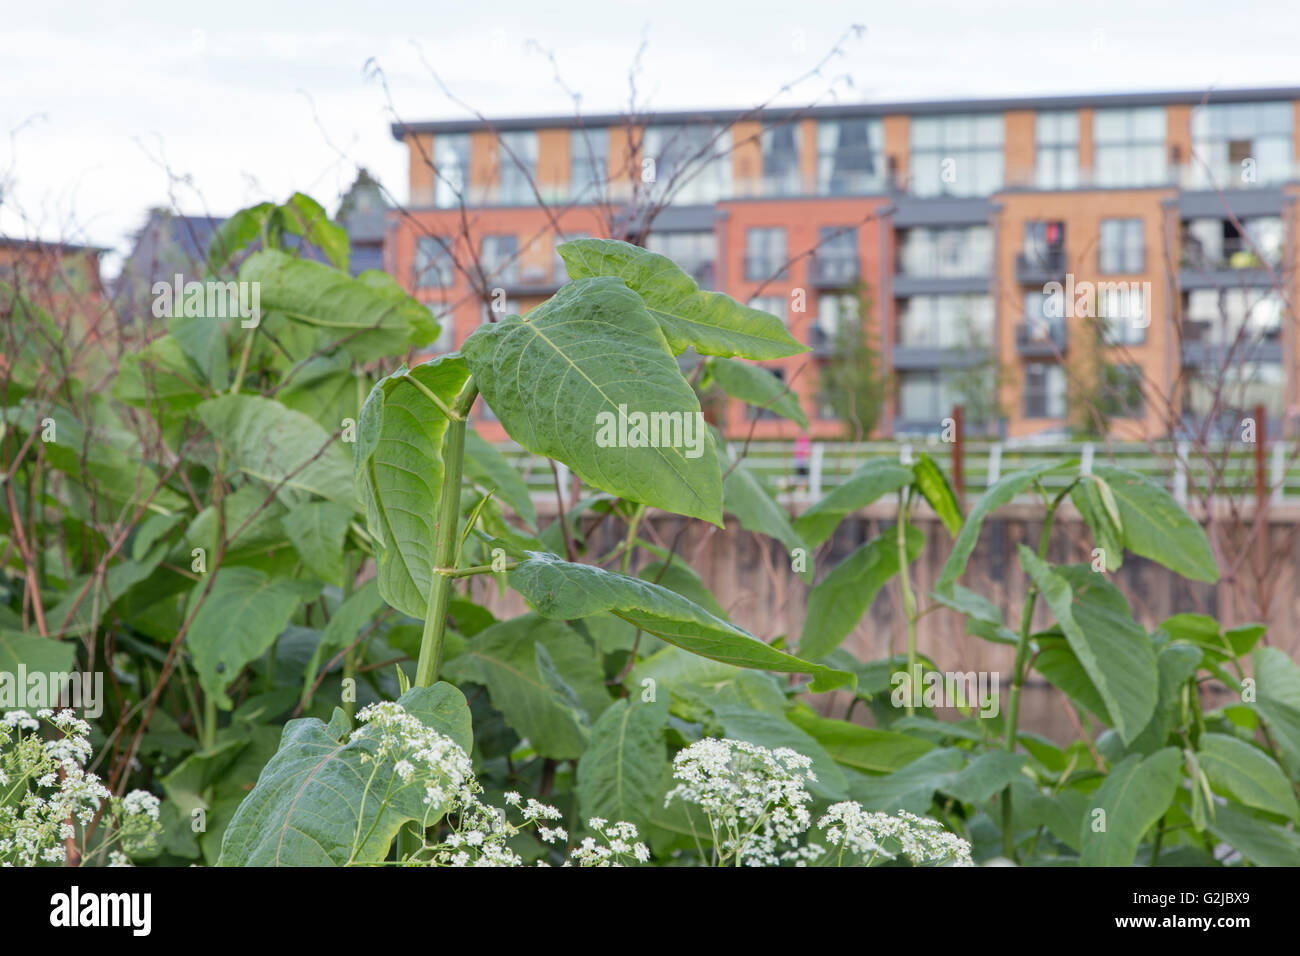 Japanese knotweed (Fallopia japonica) growing in a urban location, England, UK - Stock Image